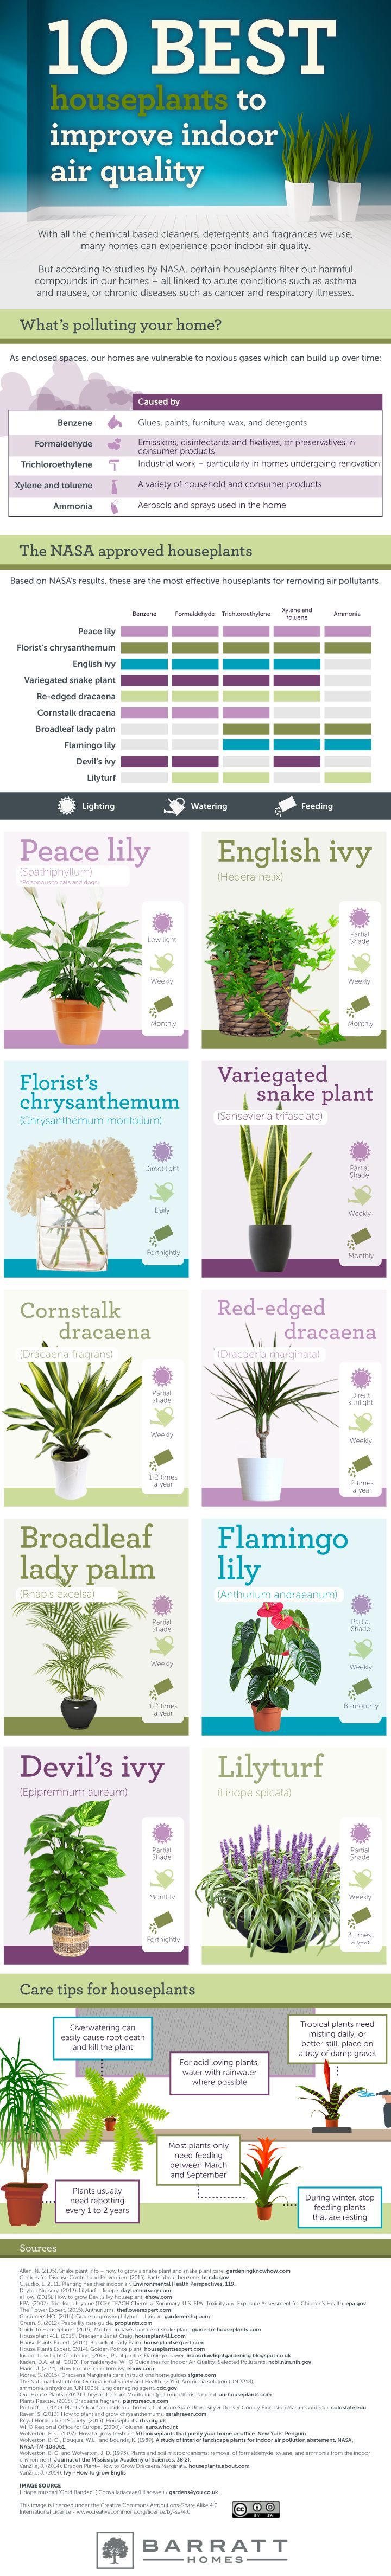 10 Best Plants to Improve Indoor Air Quality